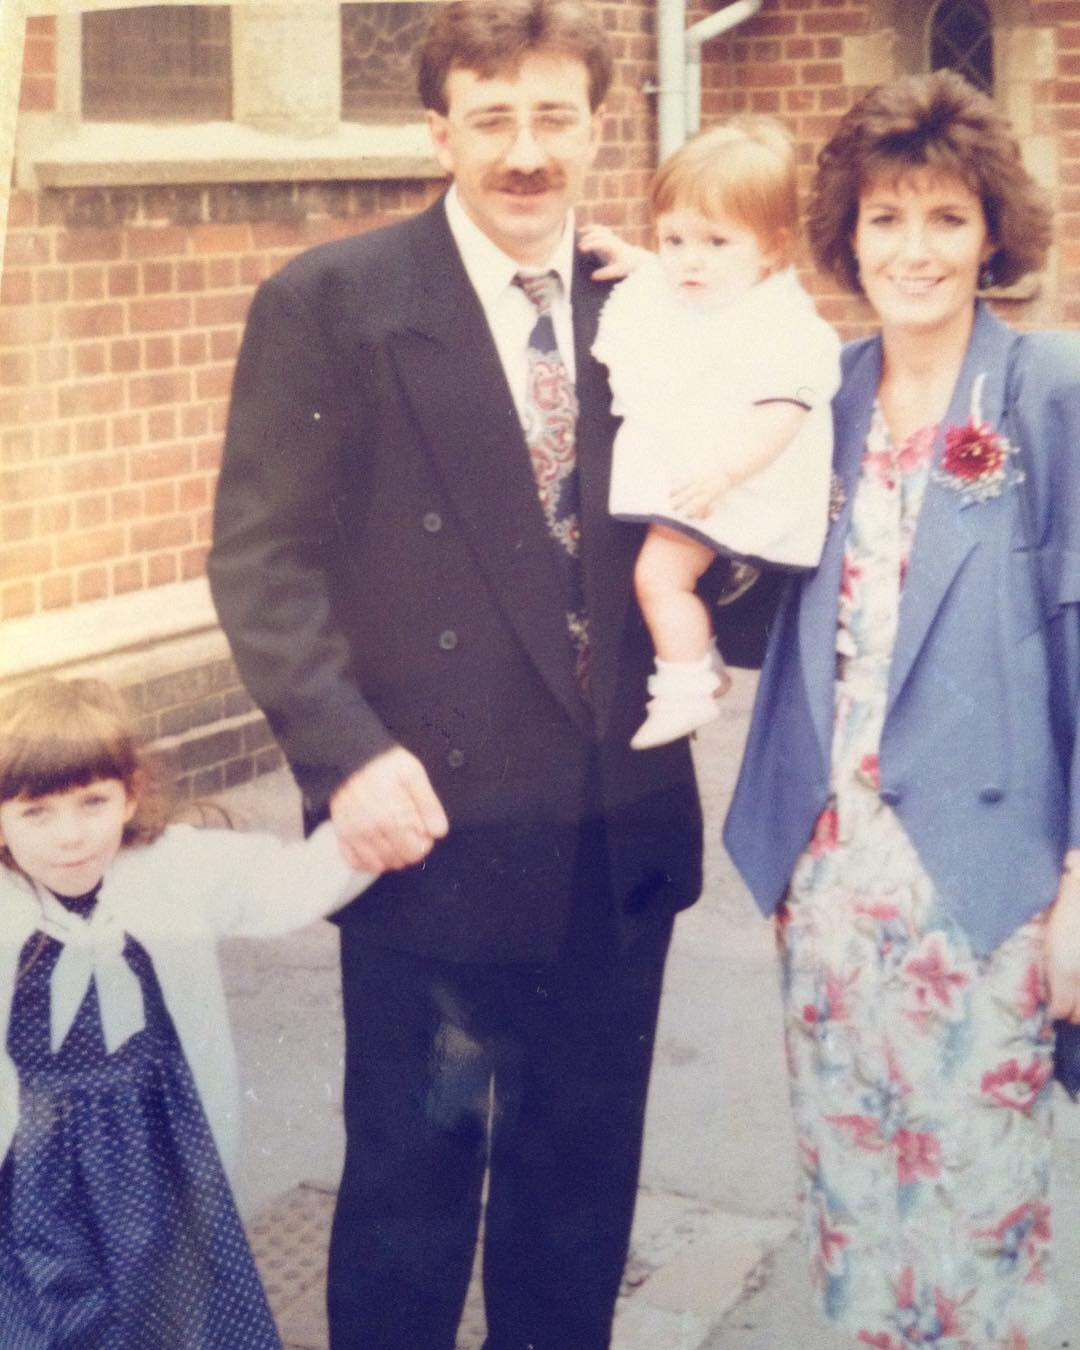 'It's in the family': Where it all began. Family is everything to me, Left to right: Kelly, (my big sister and founder of The Bees Knees.co); Tony my Dad and friend, or 'BIG TONE' as many local friends know him as; myself Emma; and finally my ever beautiful Mum, Jenny.